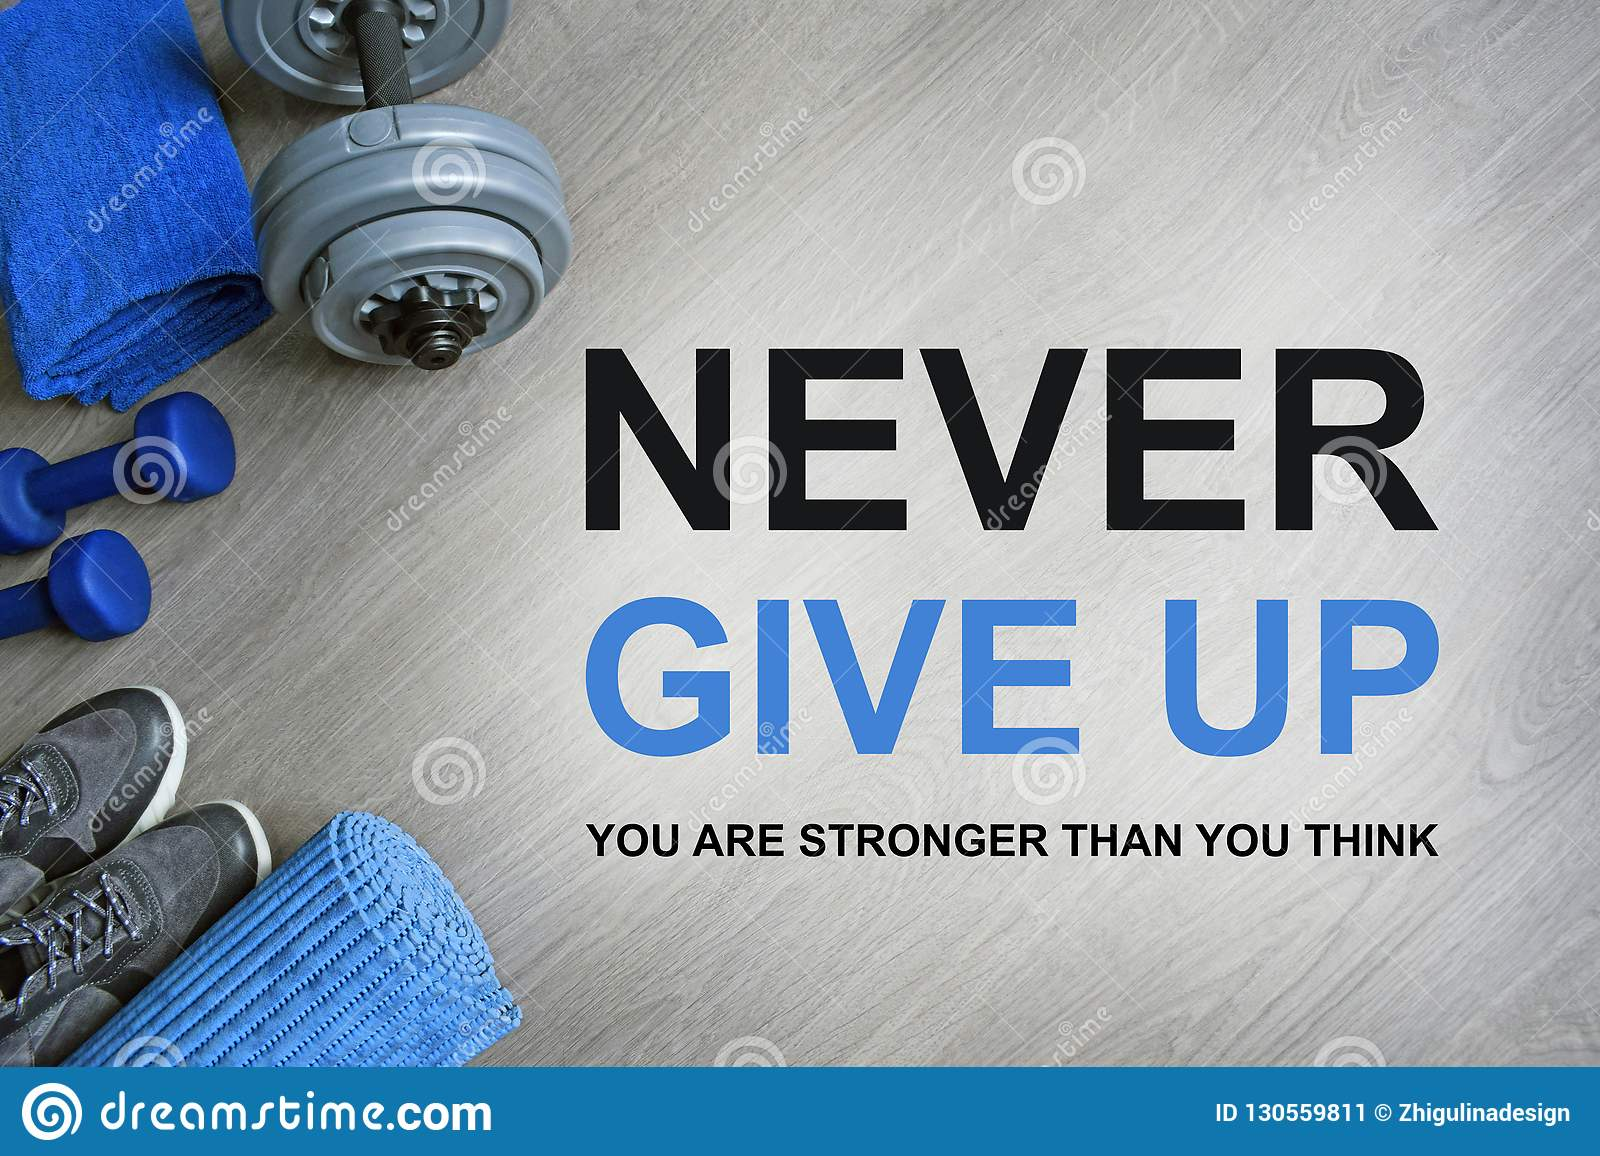 Never Give Up You Are Stronger Than You Think Fitness Motivational